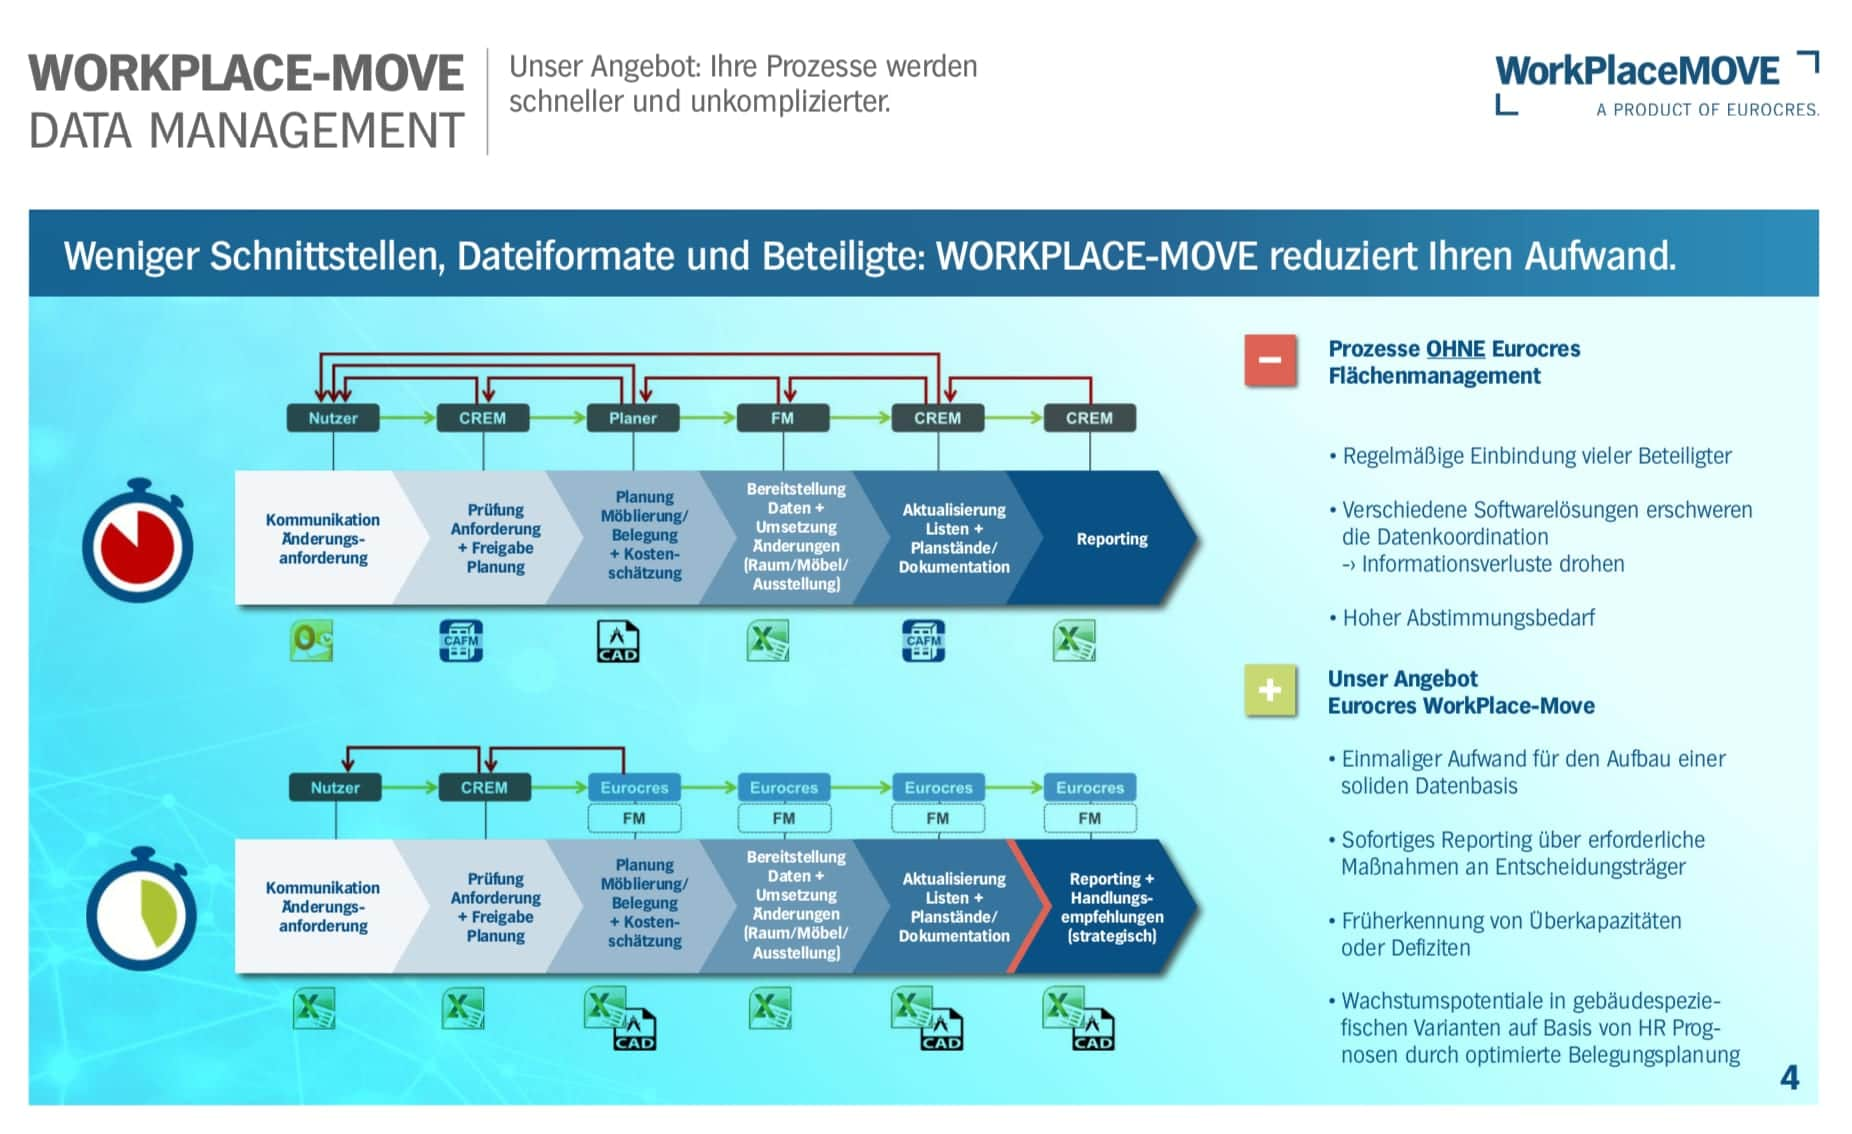 wp-move-slide4